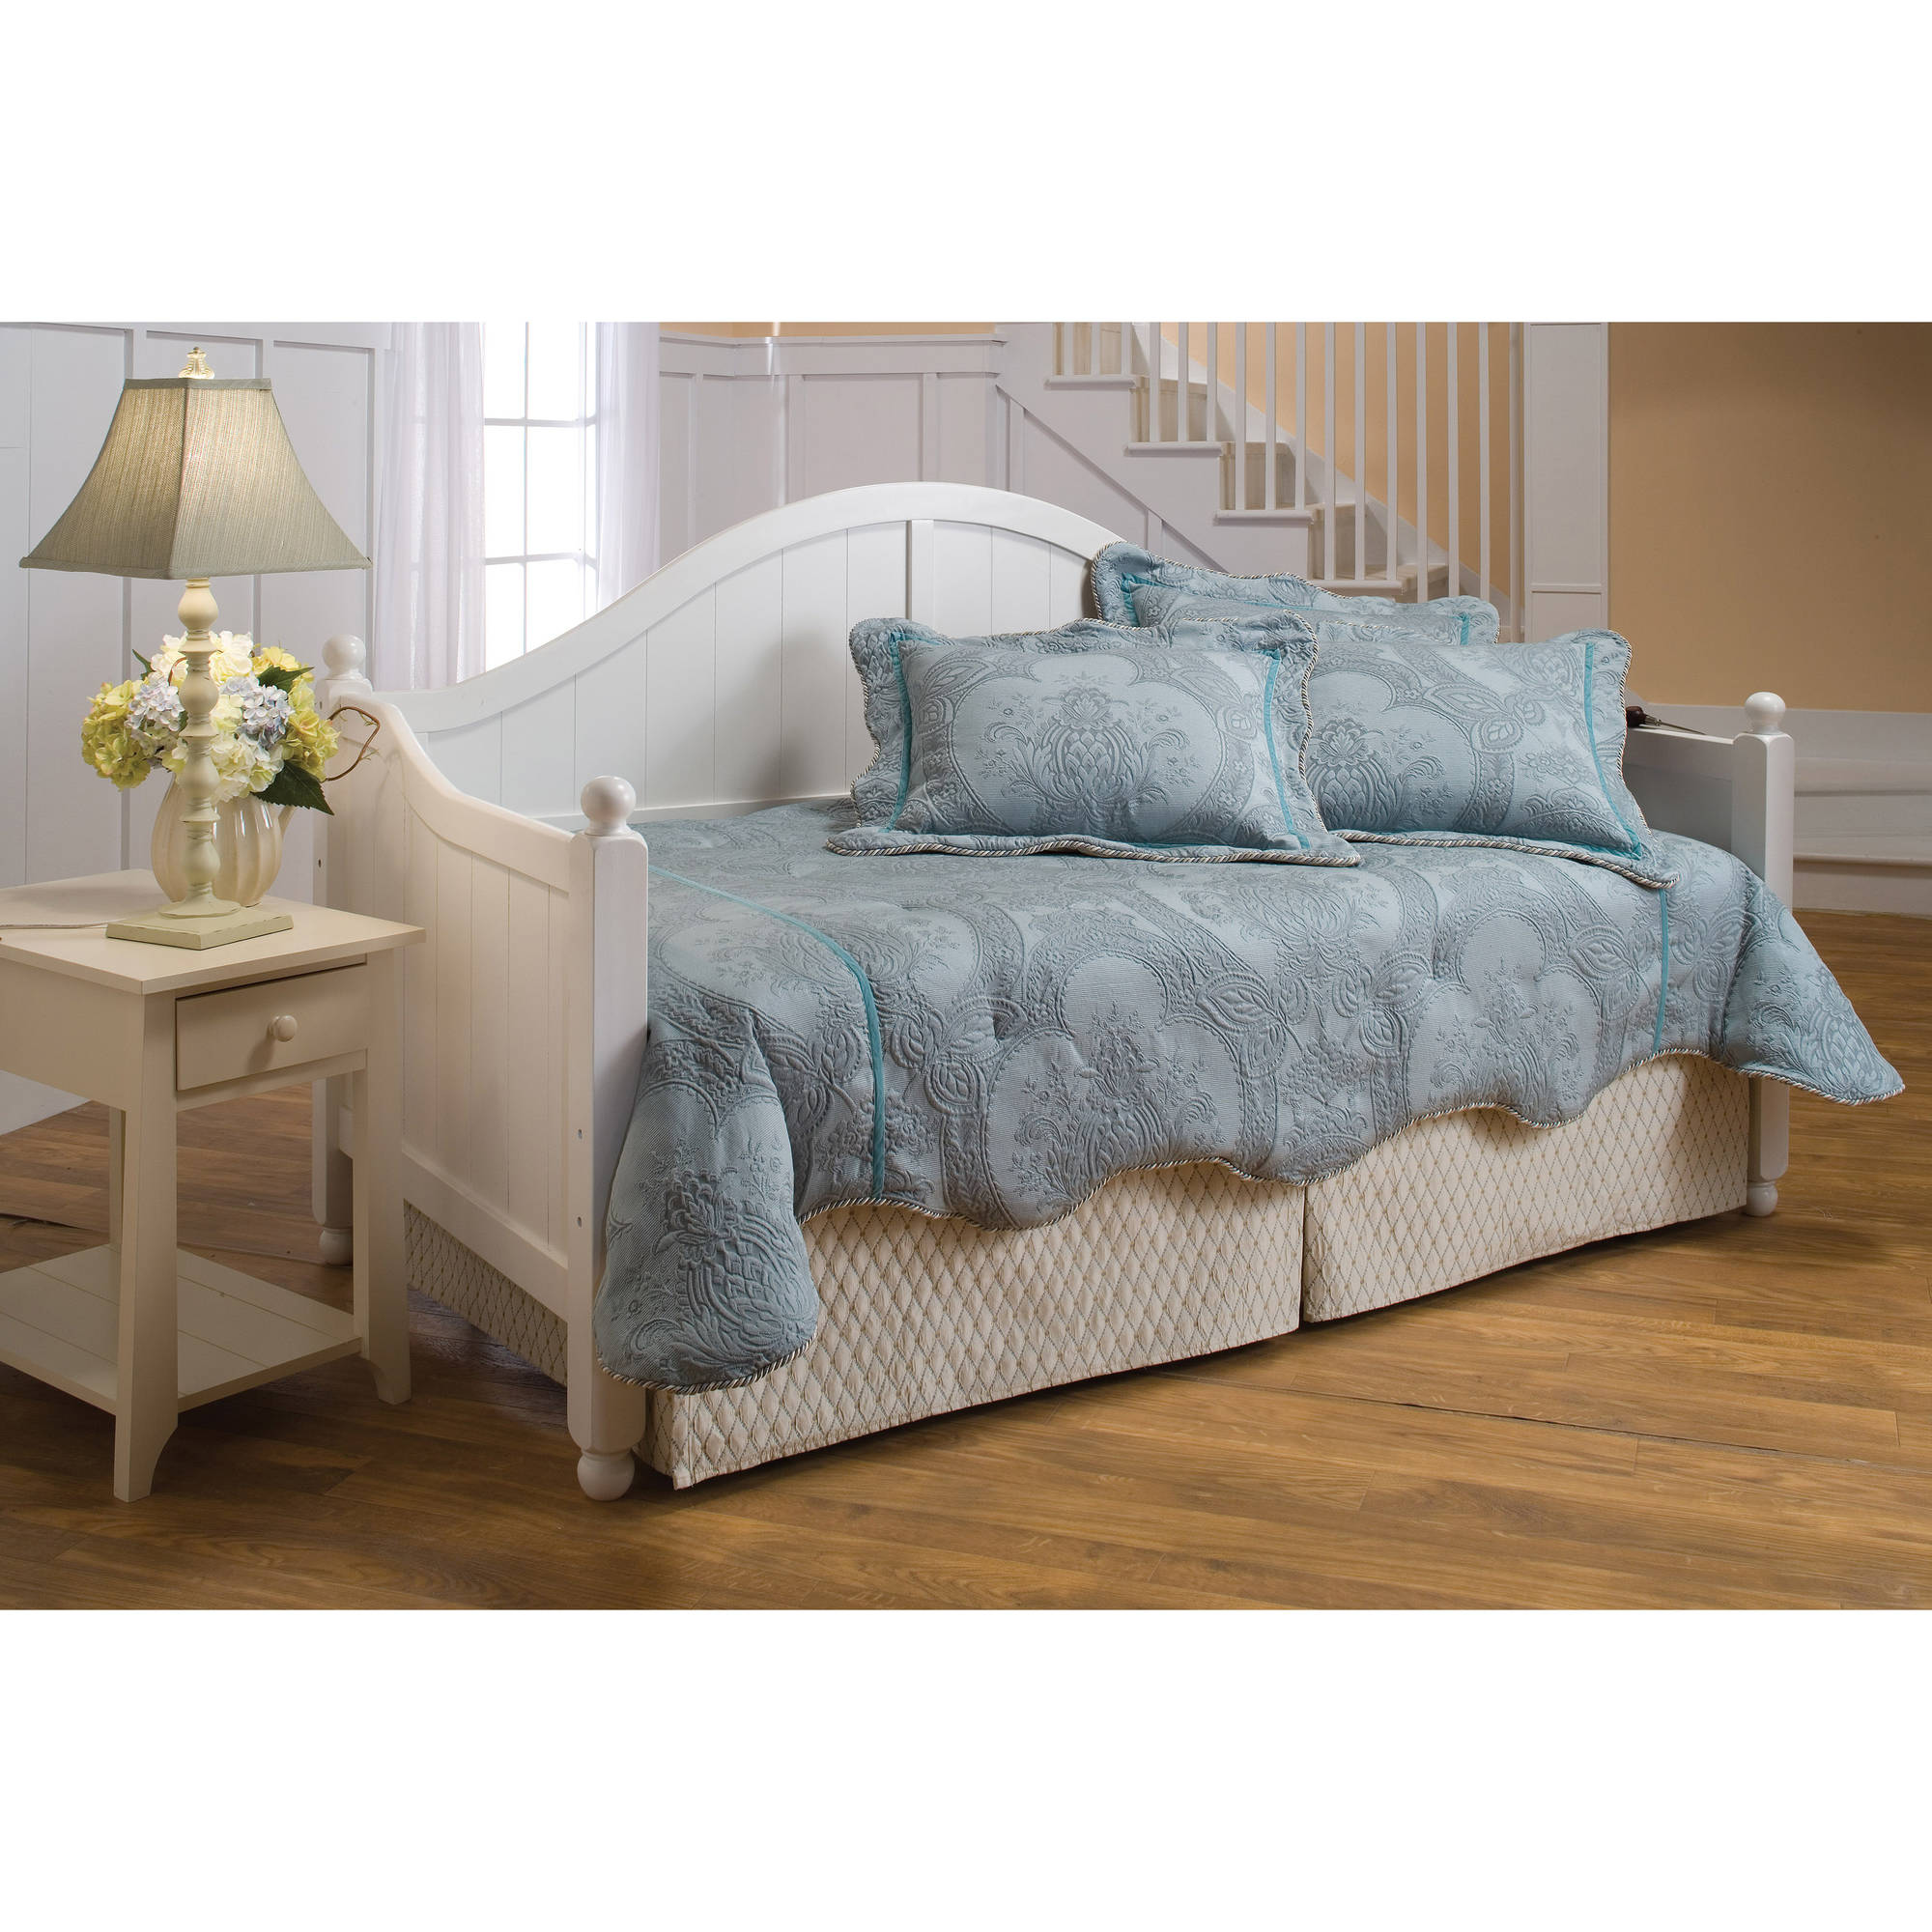 Hillsdale Furniture Augusta Day Bed, White by Hillsdale Furniture